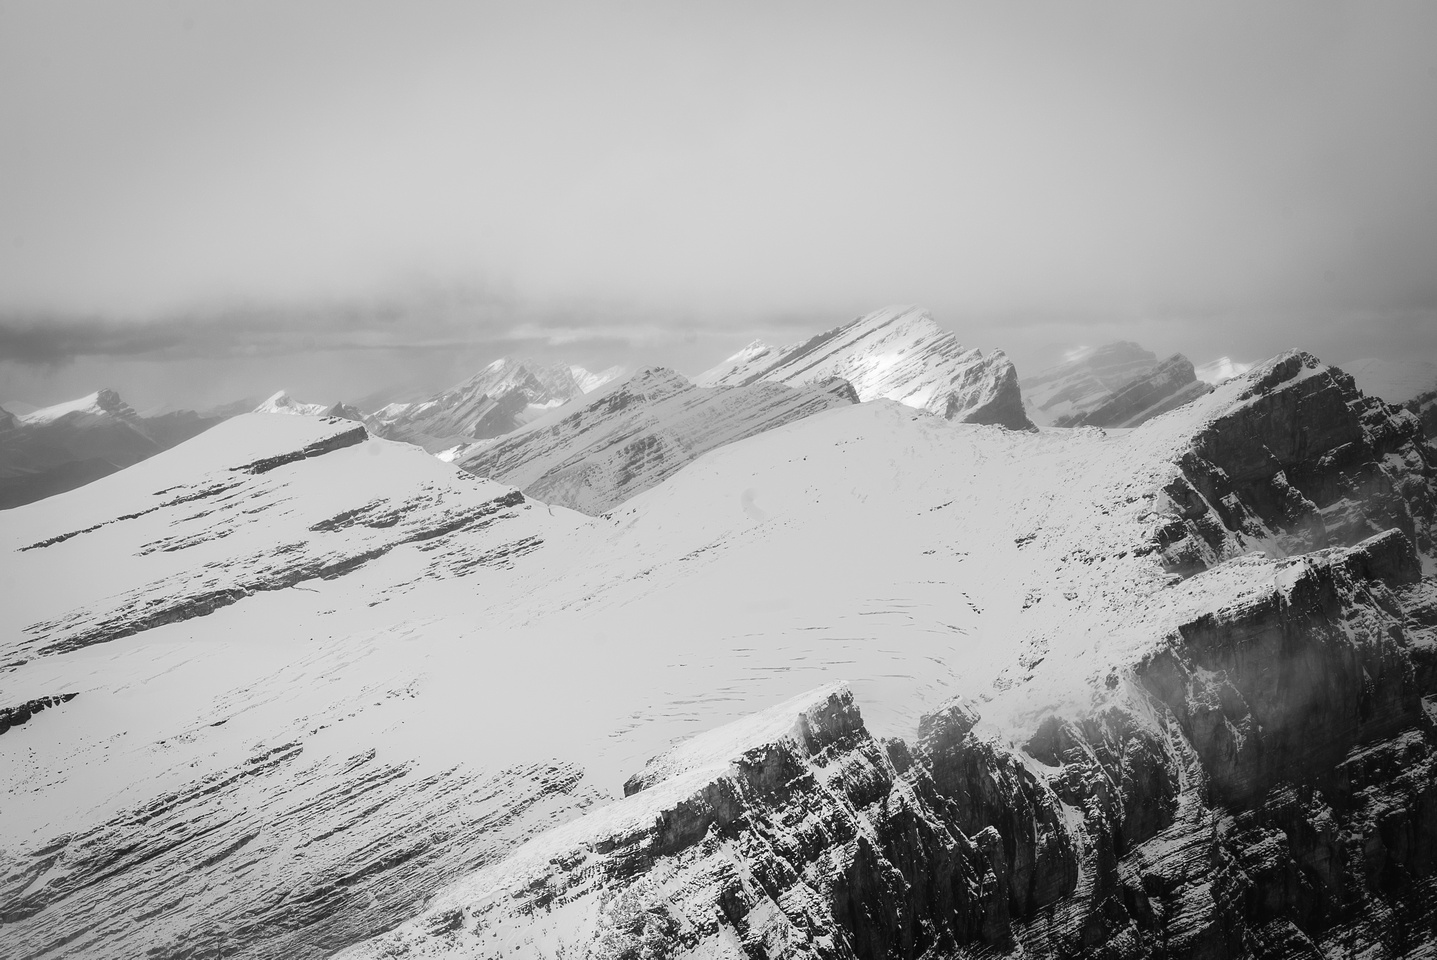 Looking north over the Drummond Icefield to Cataract Peak.